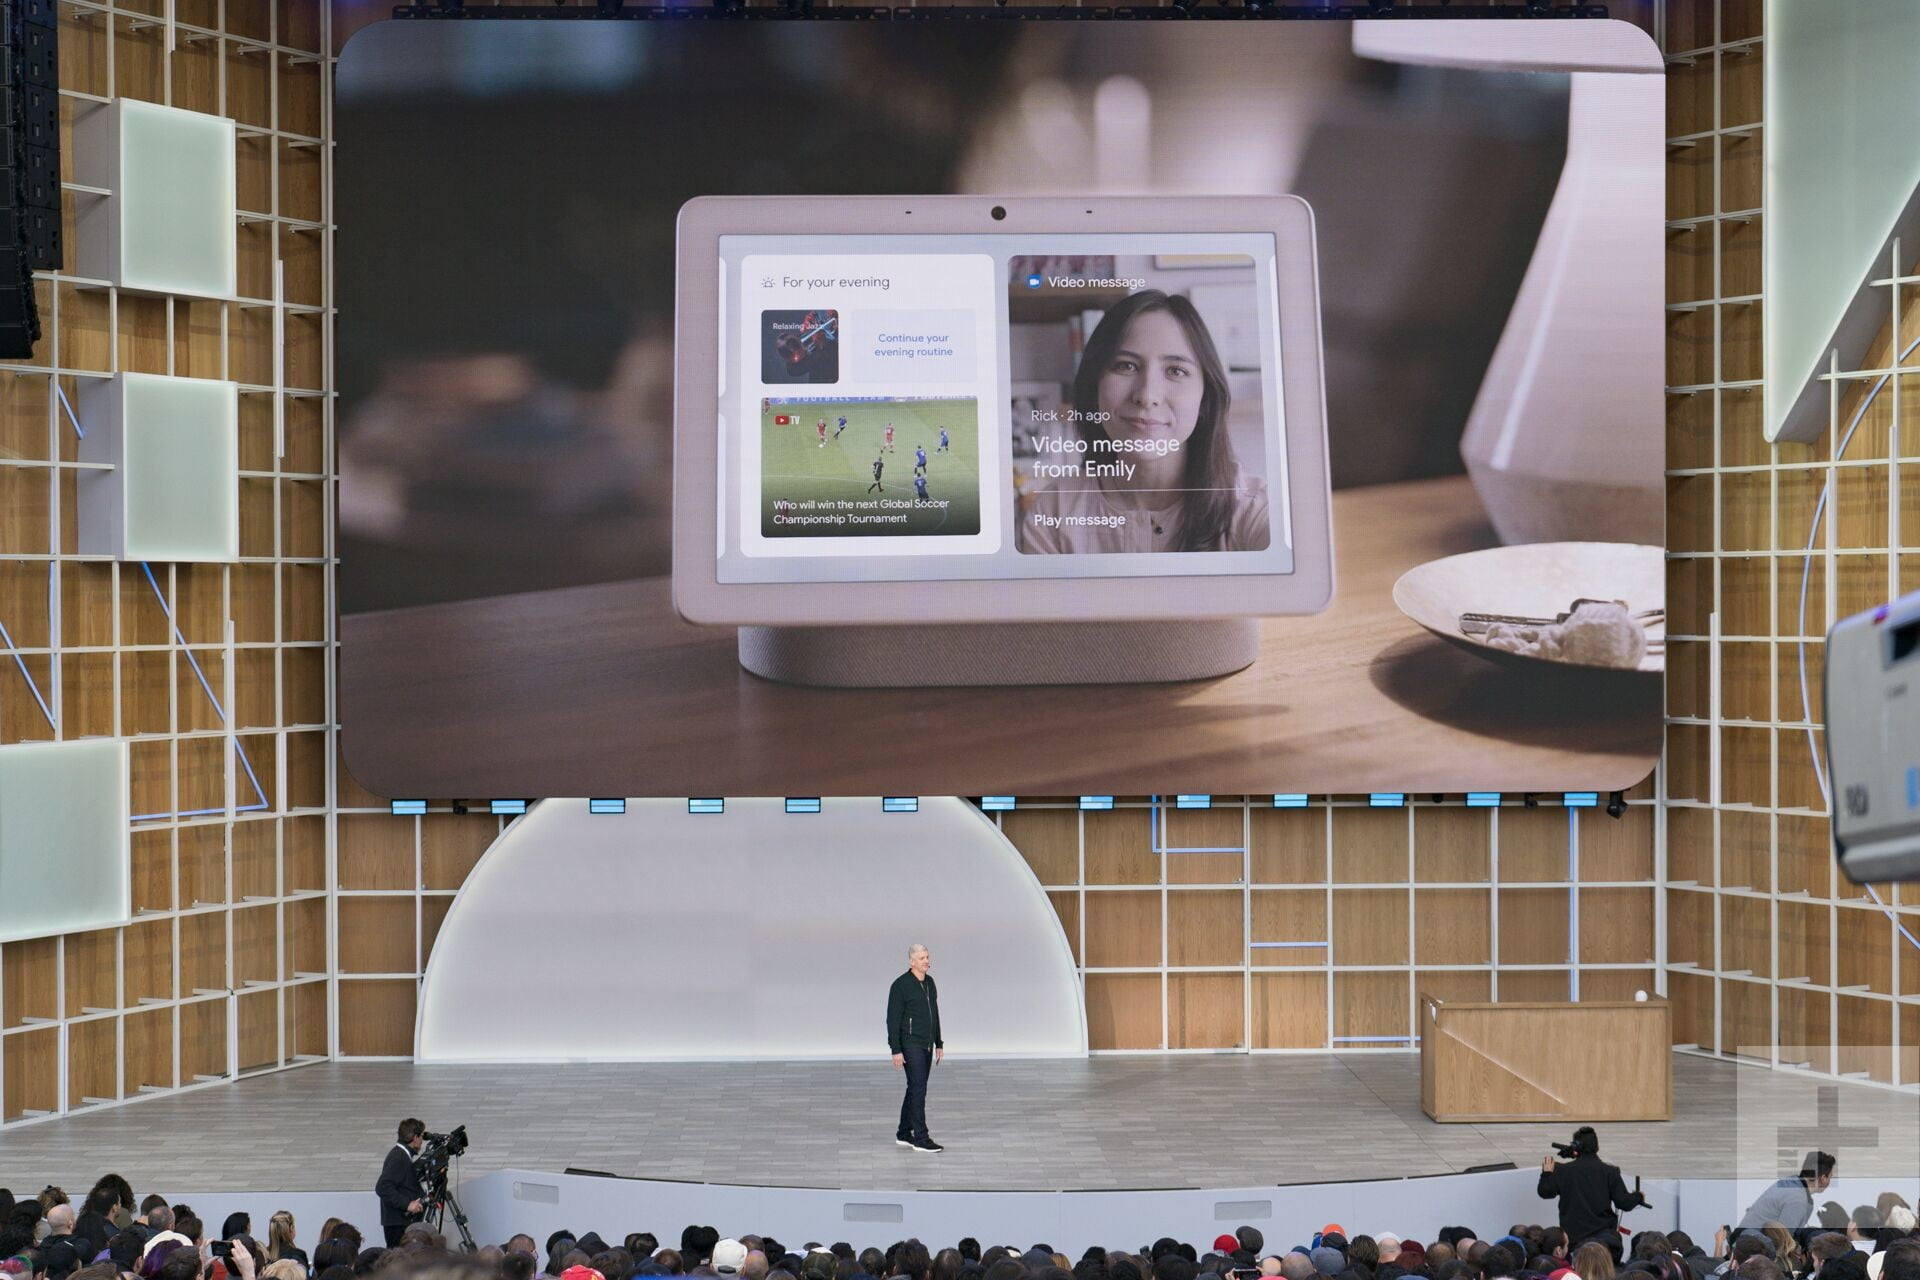 Google's Nest Hub Max smart display hopes to to take on the Echo Show